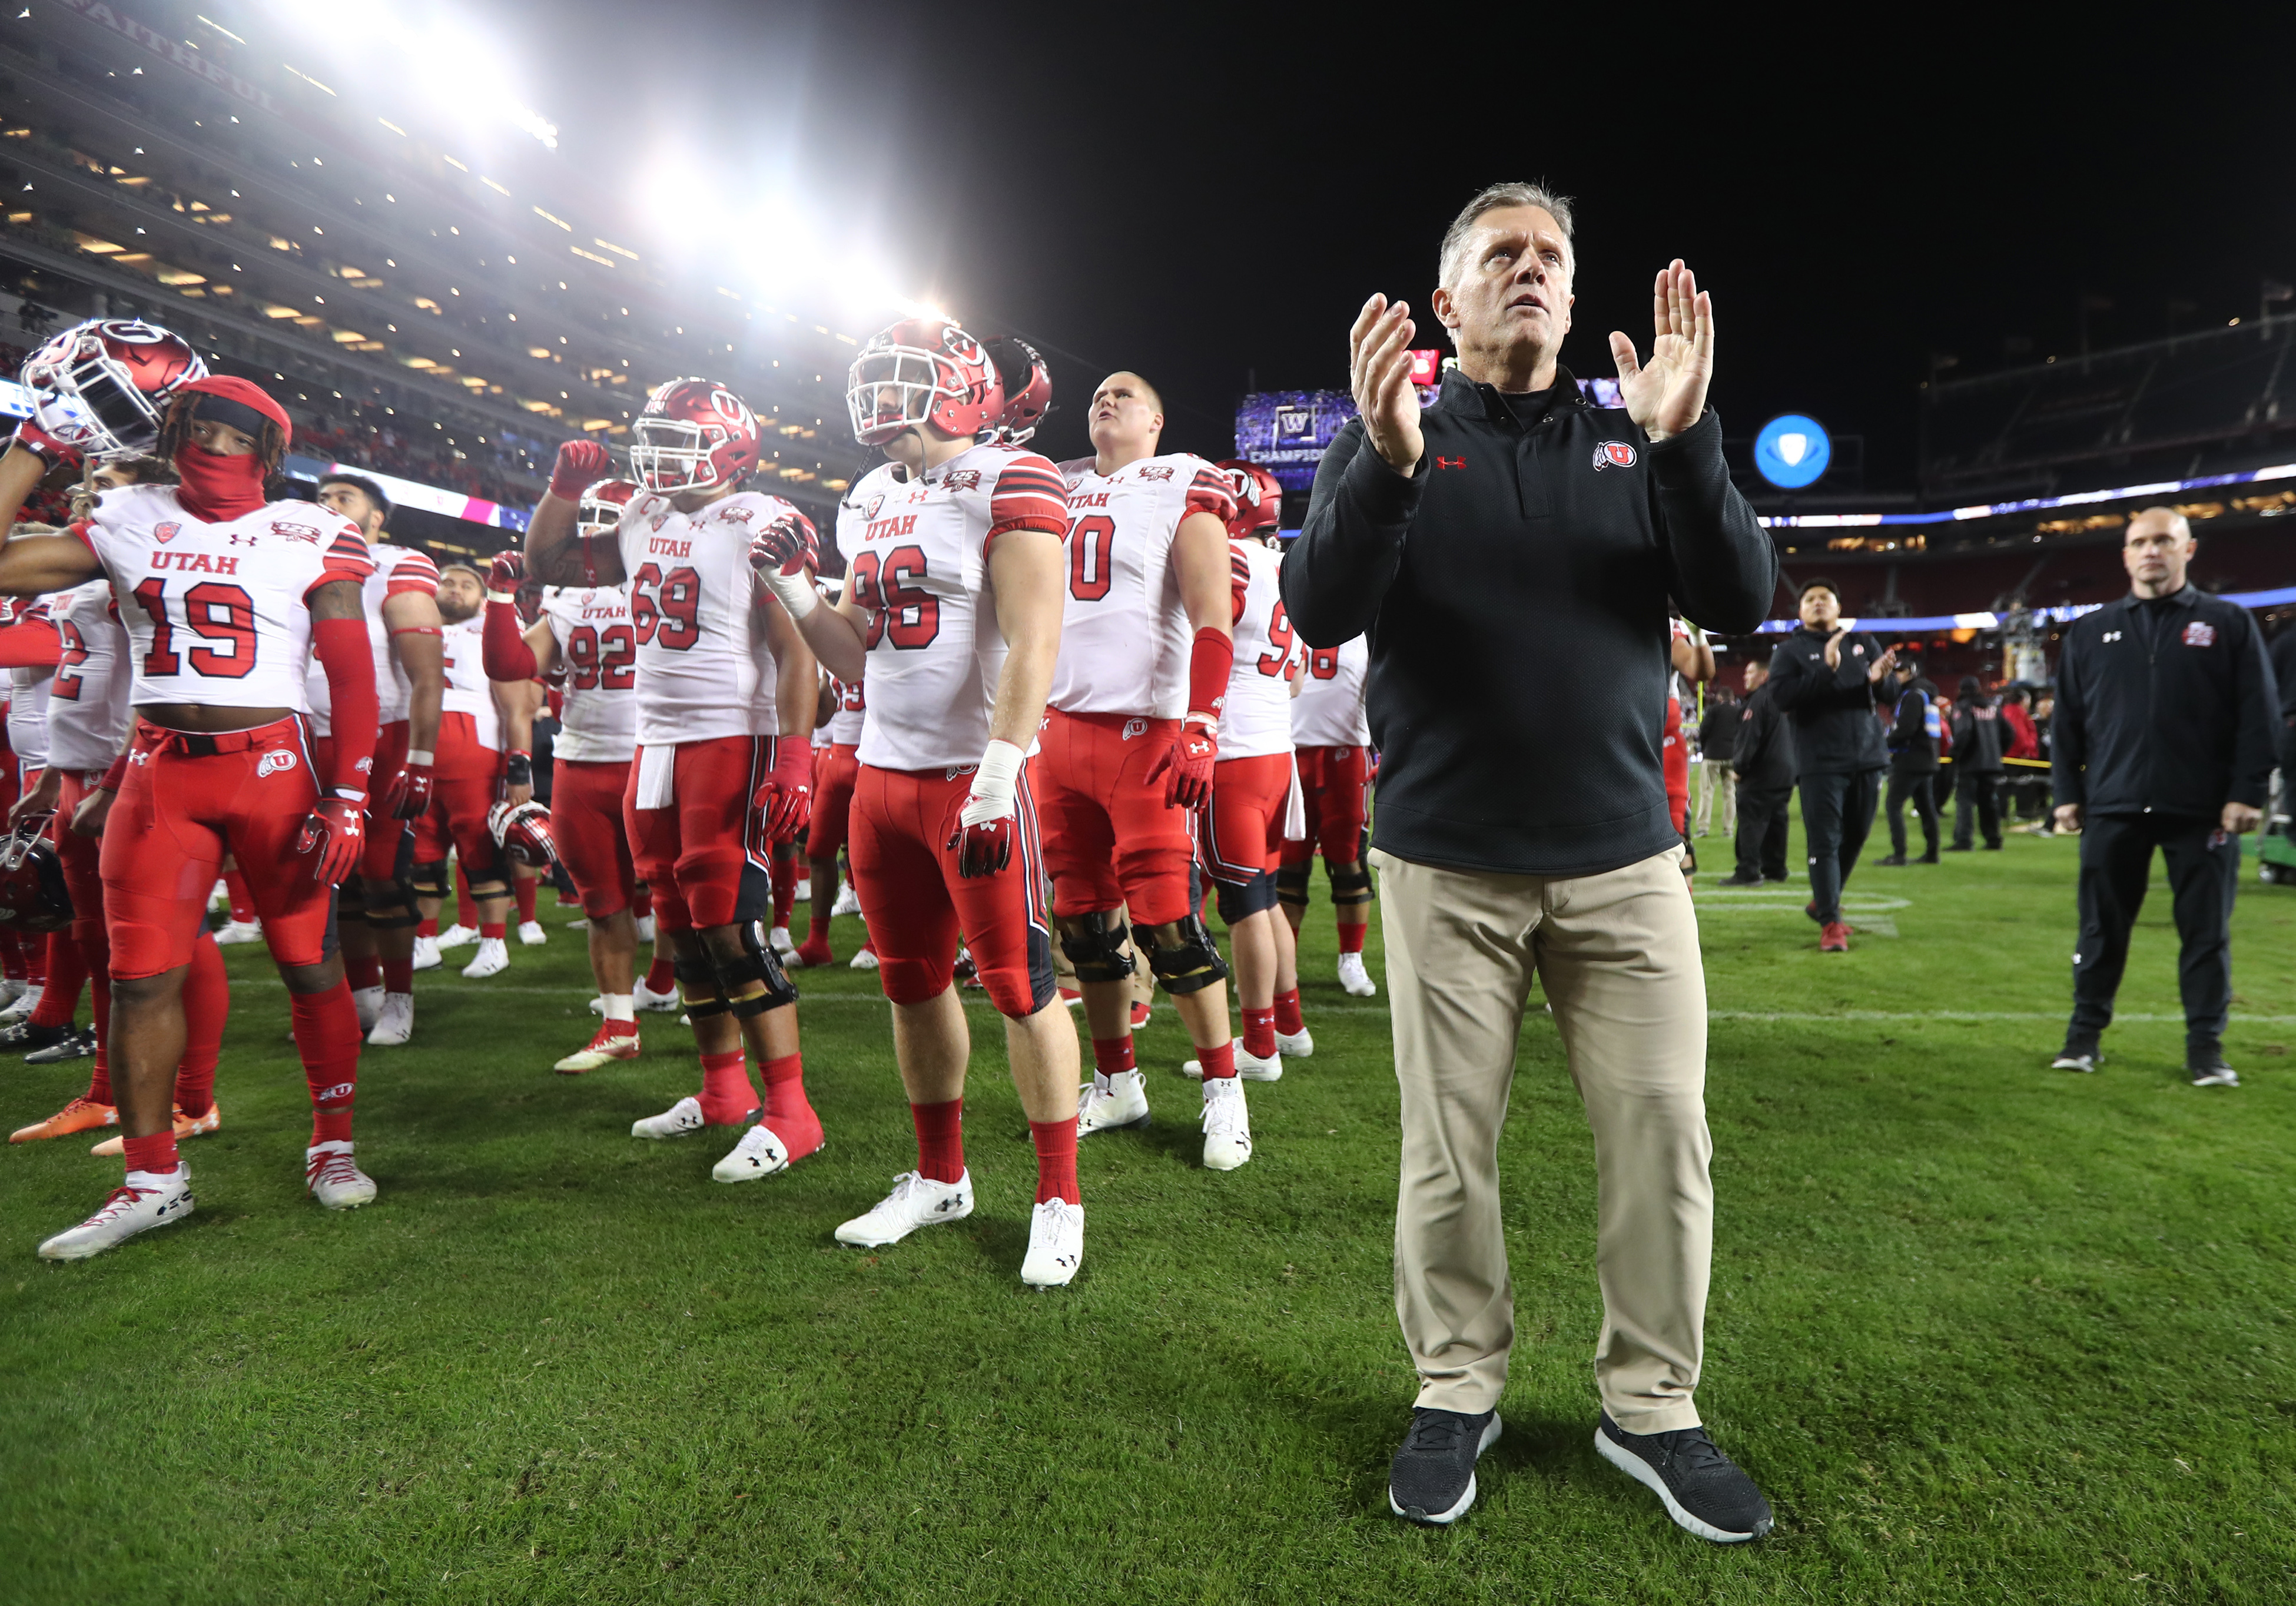 Utah Utes head coach Kyle Whittingham joins his team as they acknowledge their fans after the game as Utah falls 10-3 to Washington in the Pac-12 championship game at Levi's Stadium in Santa Clara on Friday, Nov. 30, 2018.